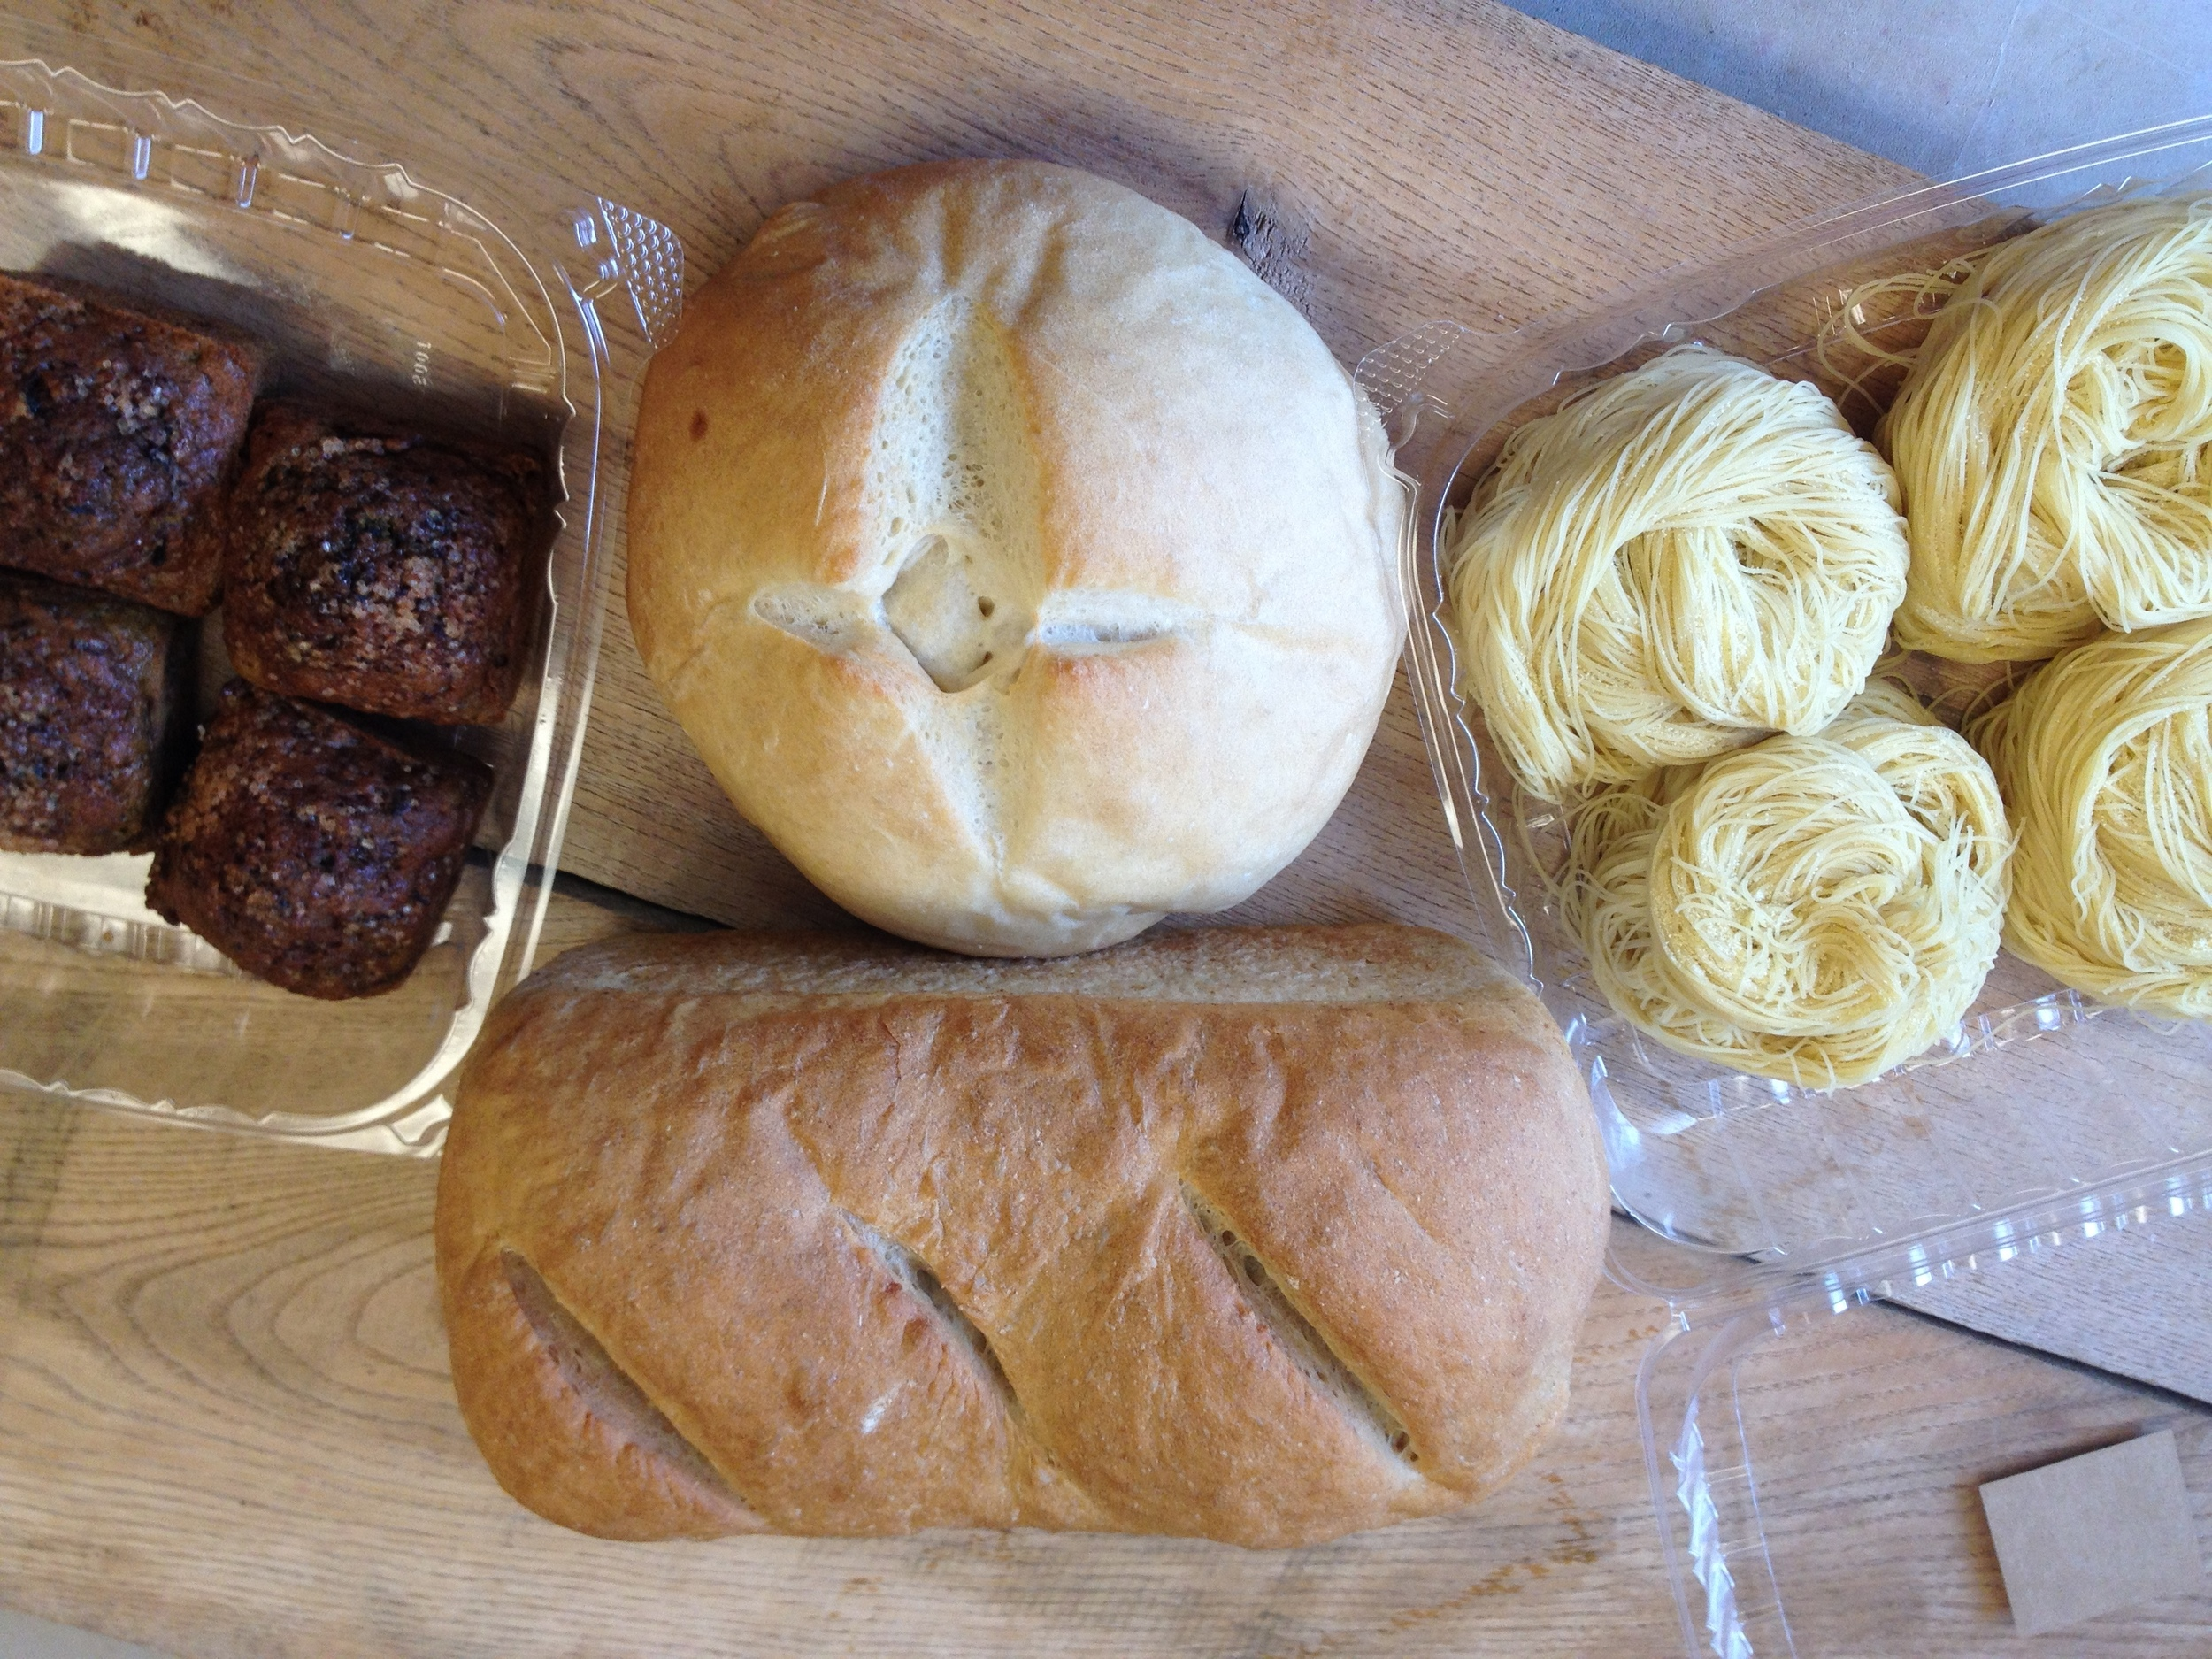 Bread, Pasta, & Grains Small- Wheat loaf, french boule, beet muffins, angel hair pasta.